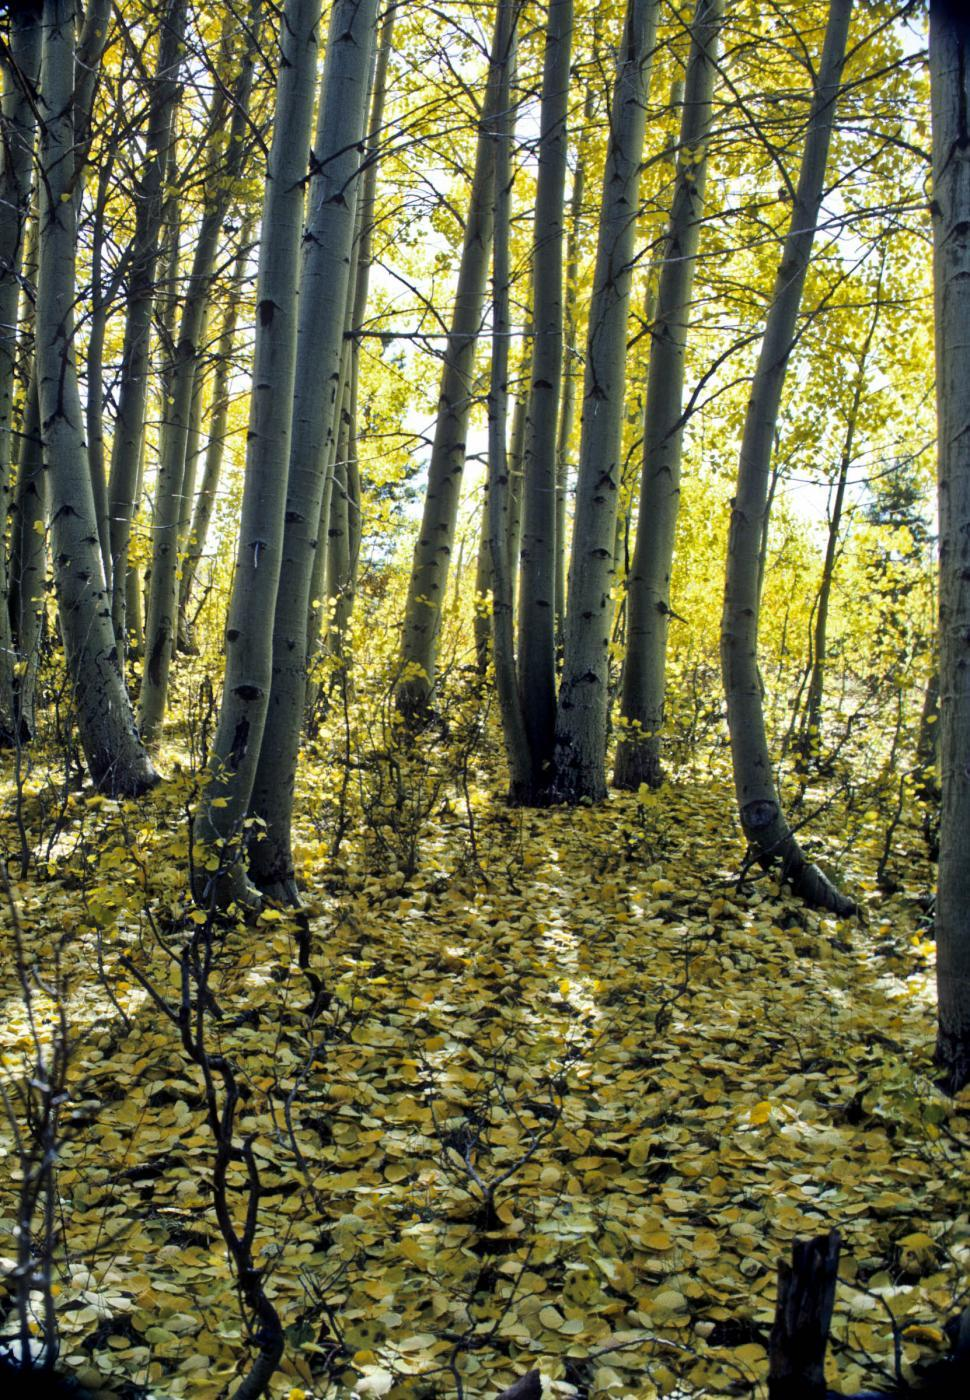 Download Free Stock HD Photo of aspen forest with fallen leaves Online